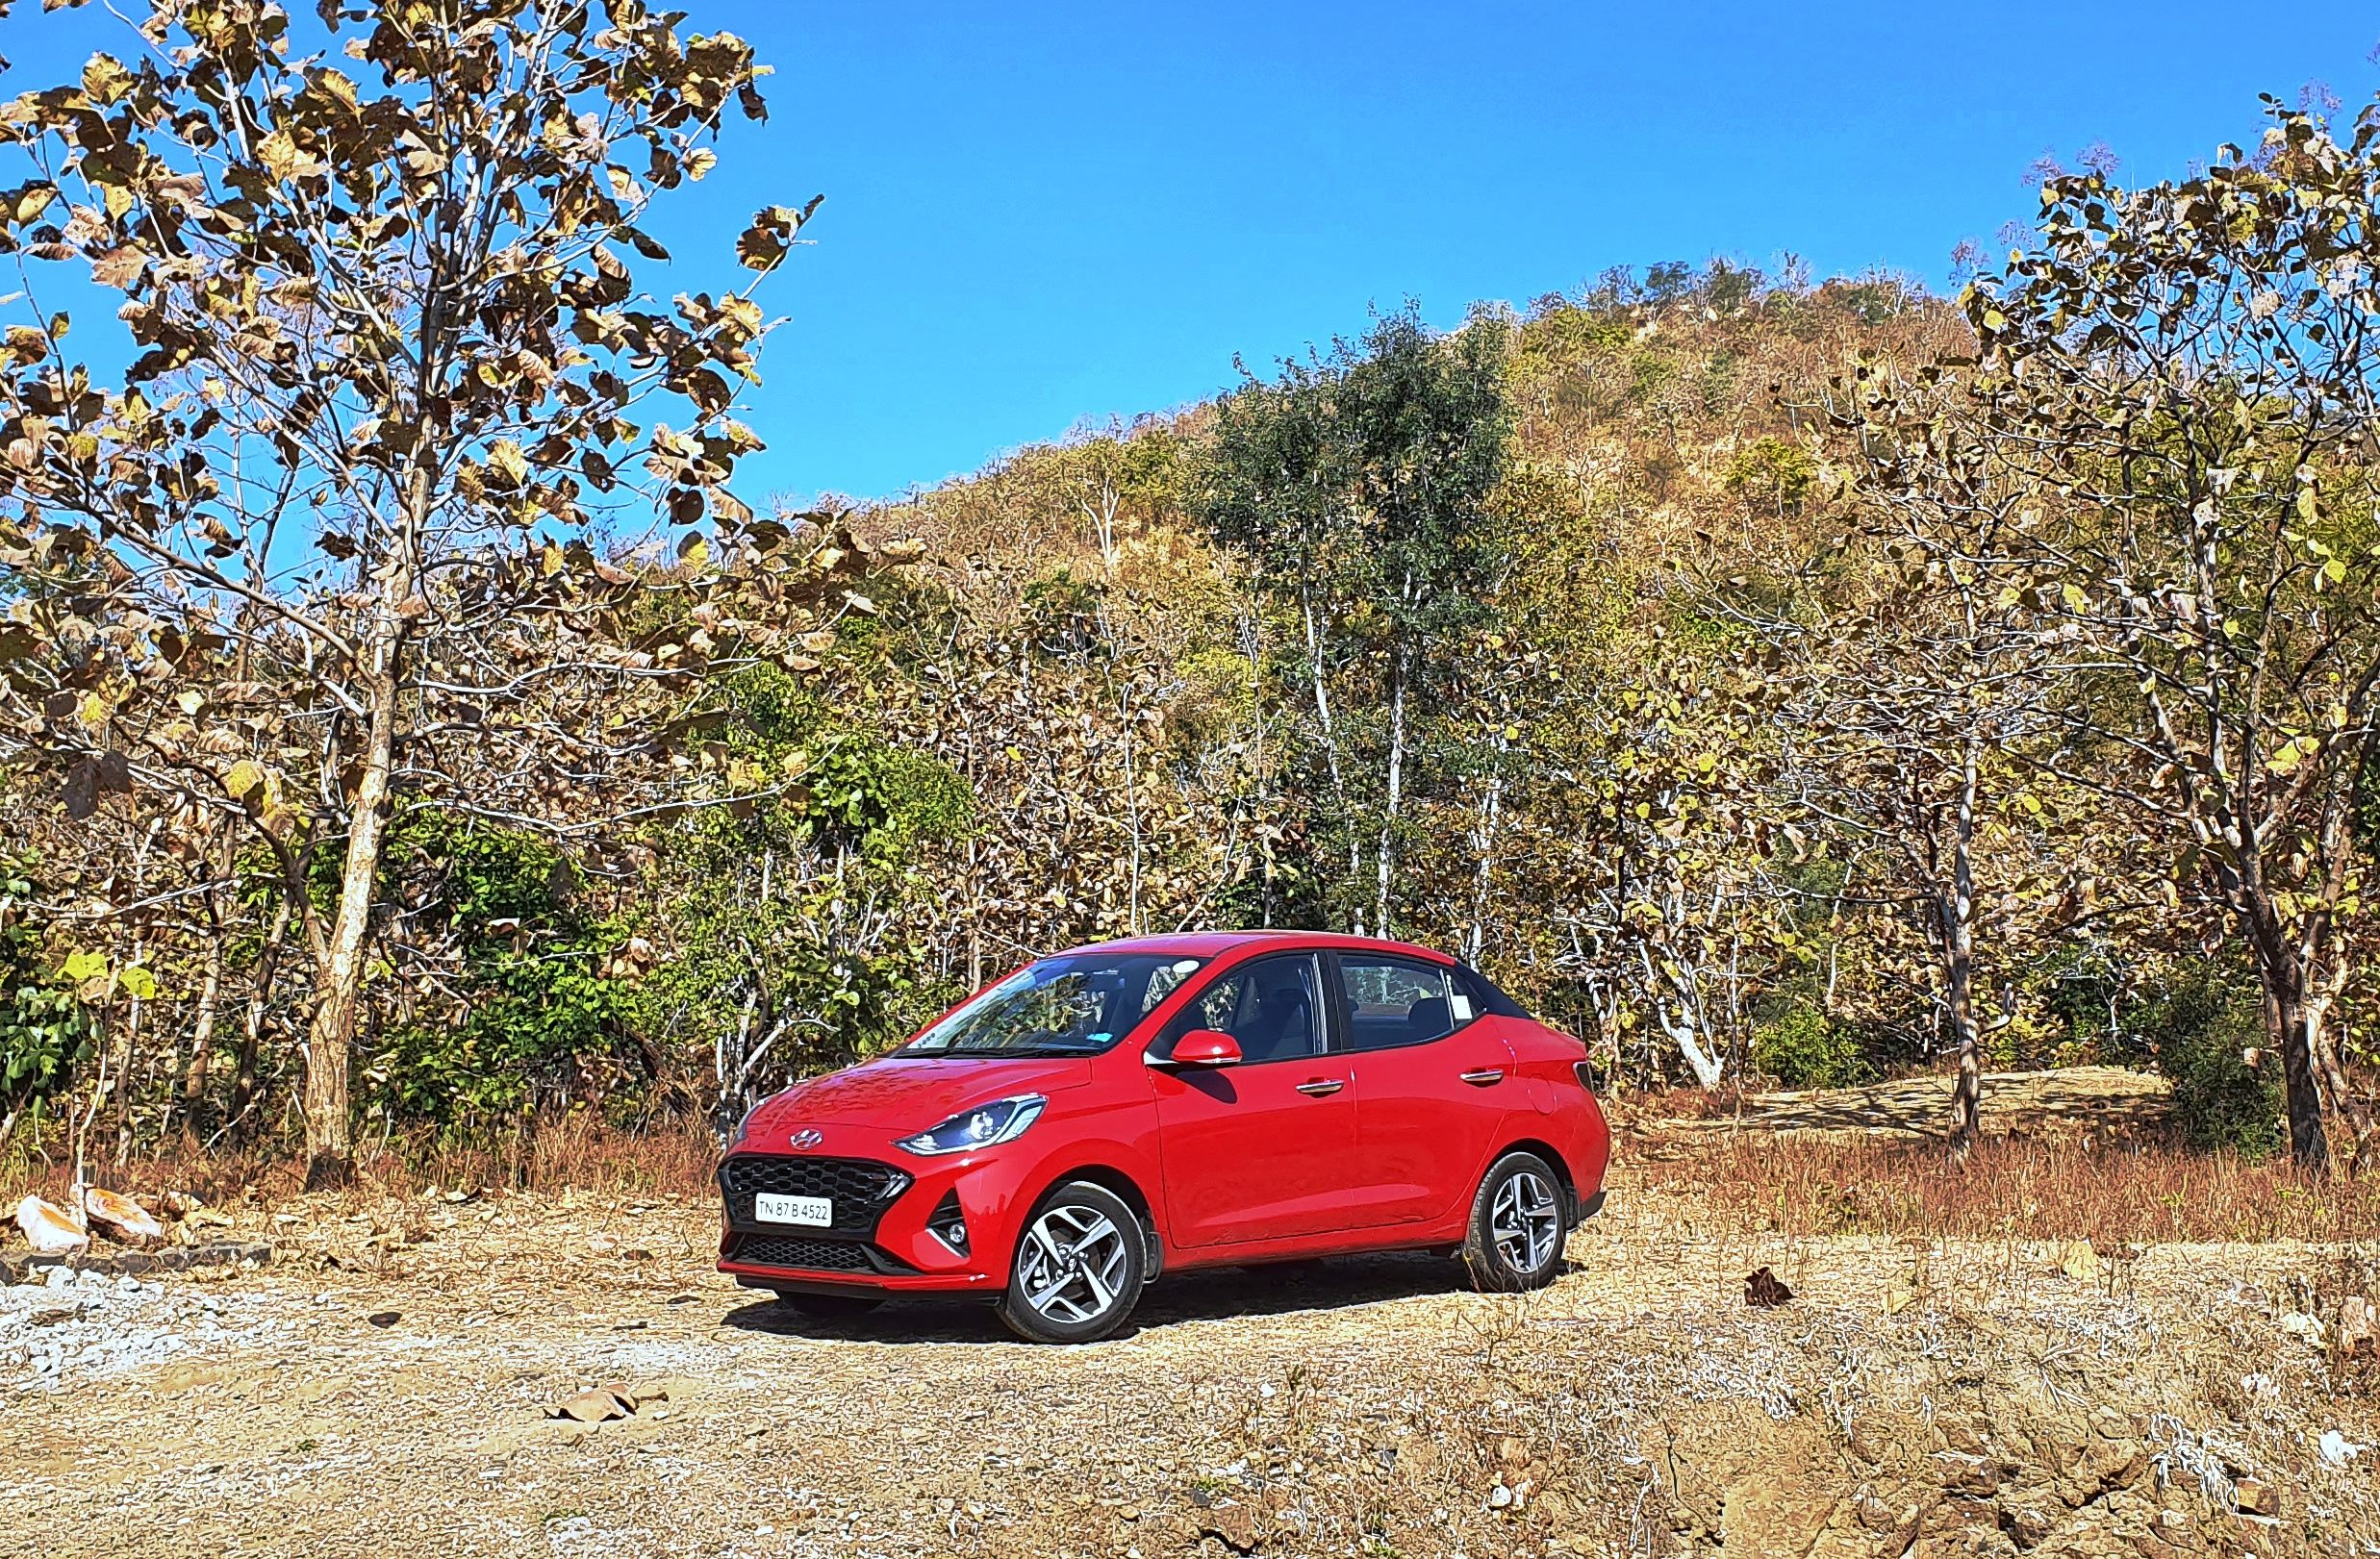 Hyundai has brought the all-new Aura compact sedan in the Indian market which will stand besides Xcent but will target the more premium car buyer. It boasts of a number of engine options, a solid warranty package and several segment-first features. (Sabyasachi Dasgupta/HT Auto Photo)